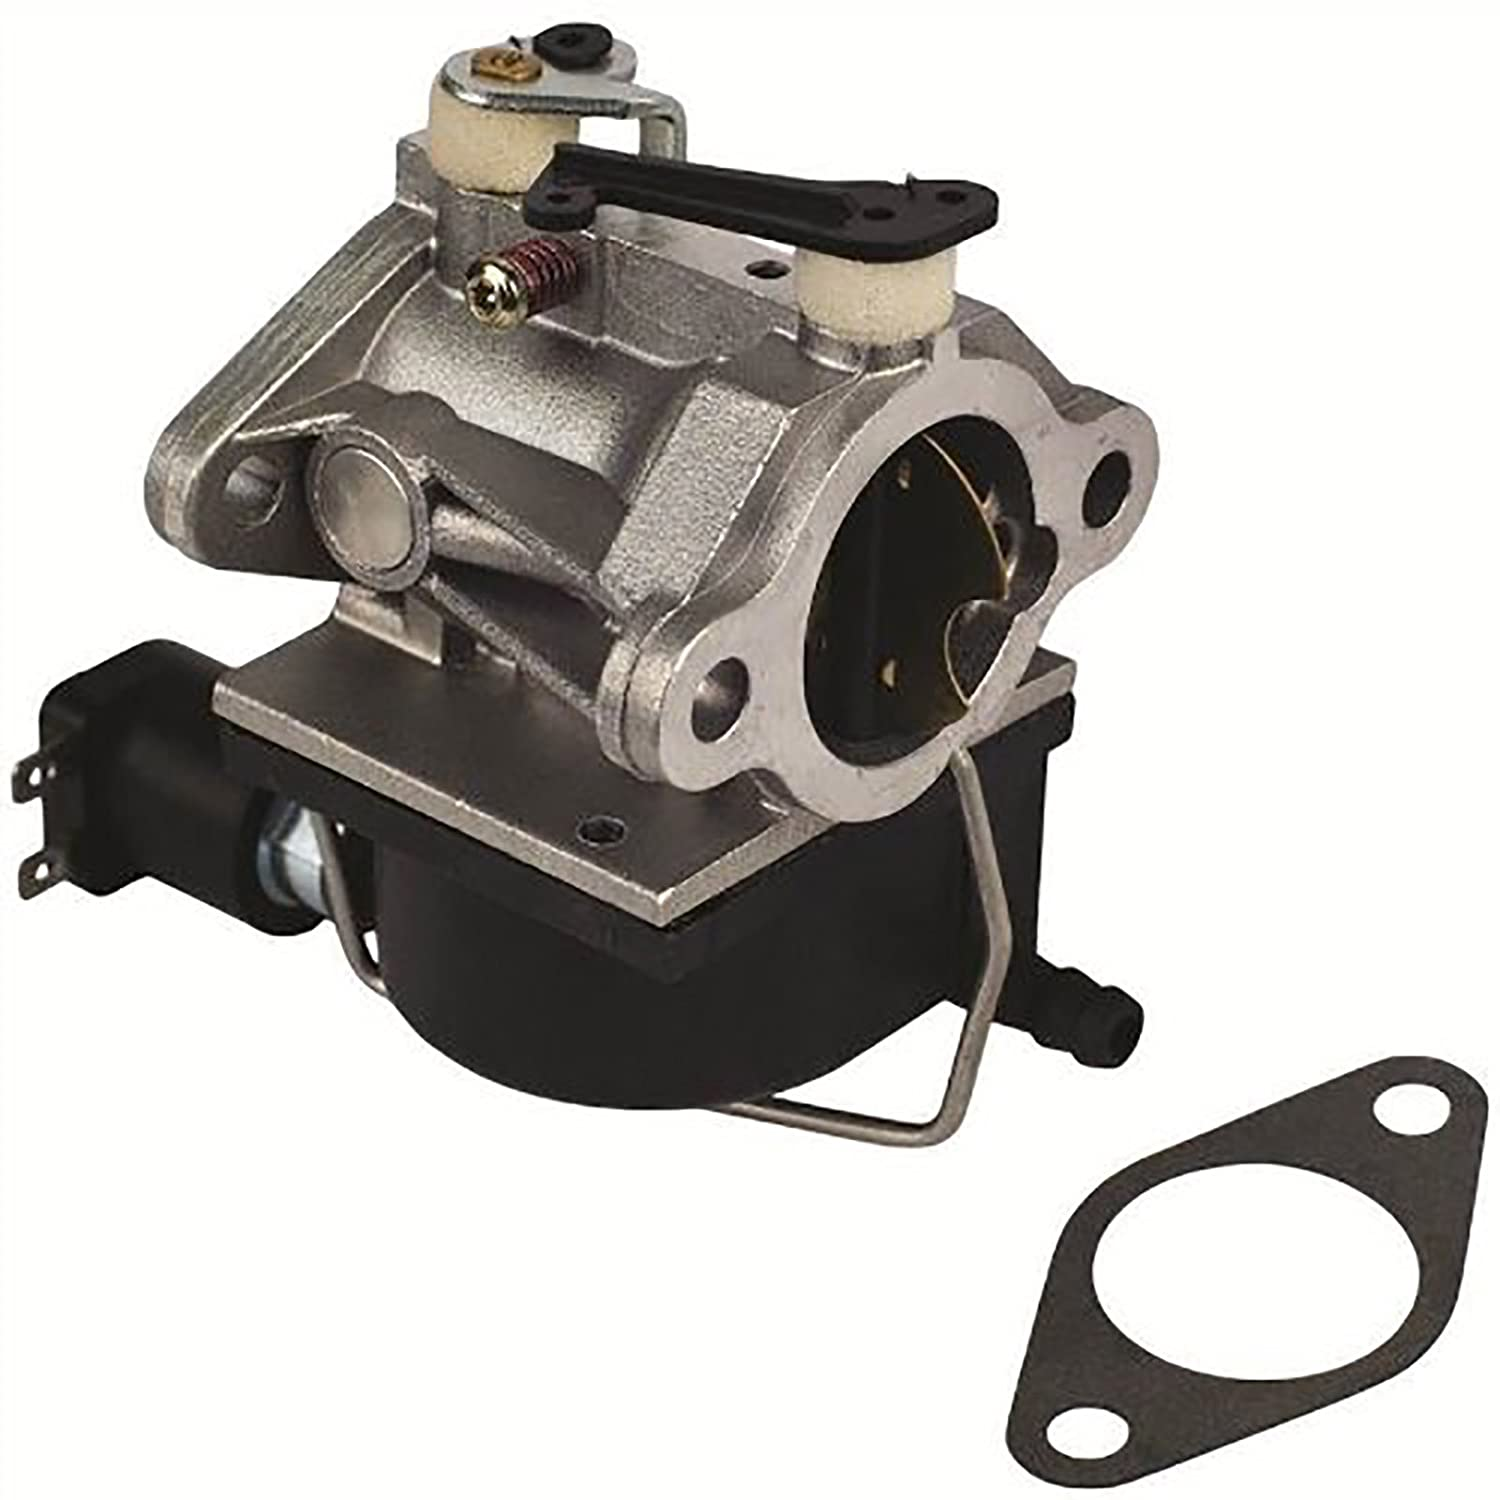 Carburetor Diagram Parts List For Model H6075506n Tecumsehparts All 640330 640330a Tecumseh Includes Fuel Shut Off Solenoid Garden Outdoor